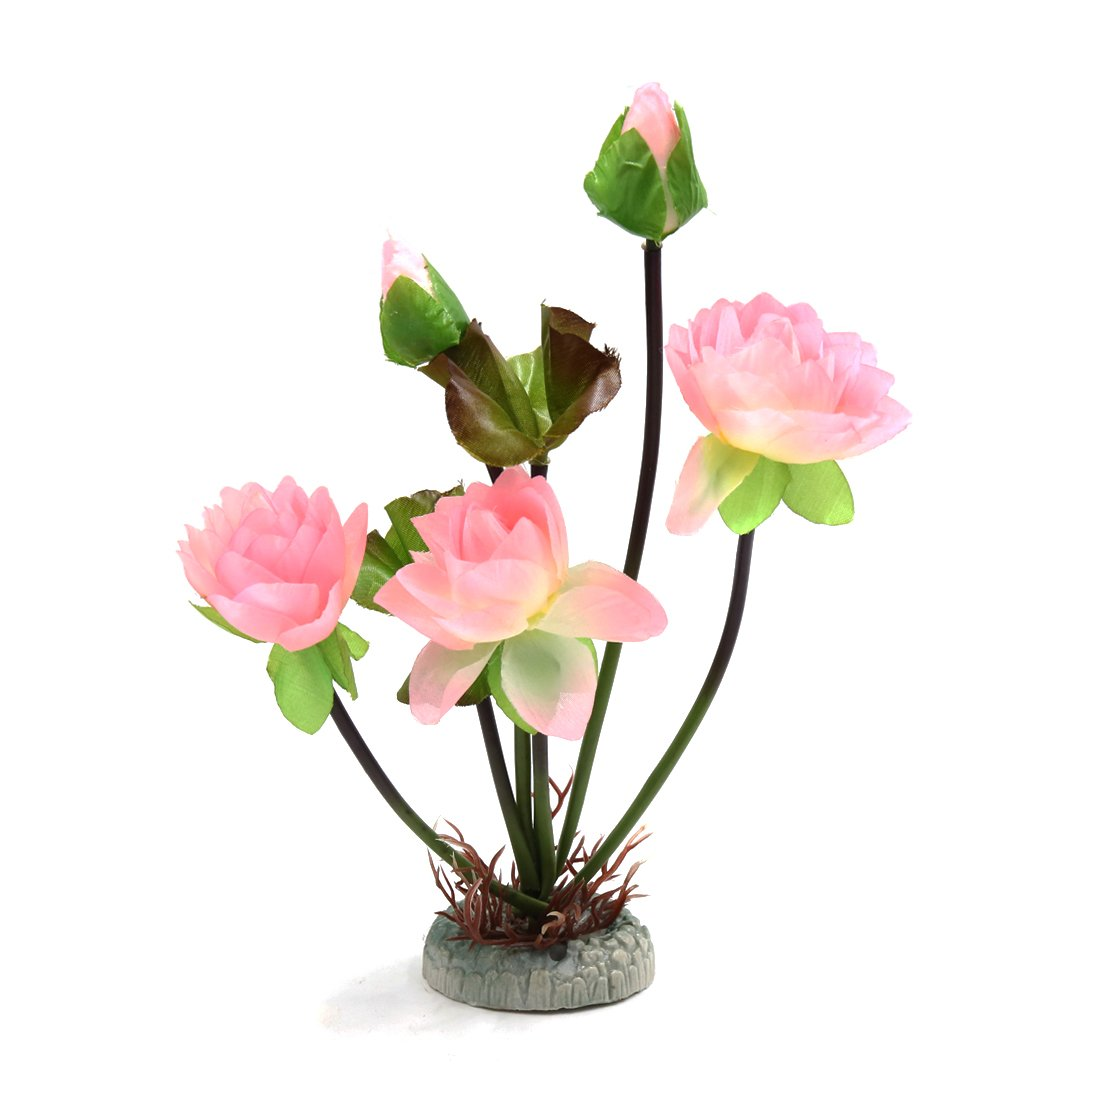 Uxcell Light Pink Plastic Flowered Plant Fishbowl Betta Tank Decor w Weighted Base